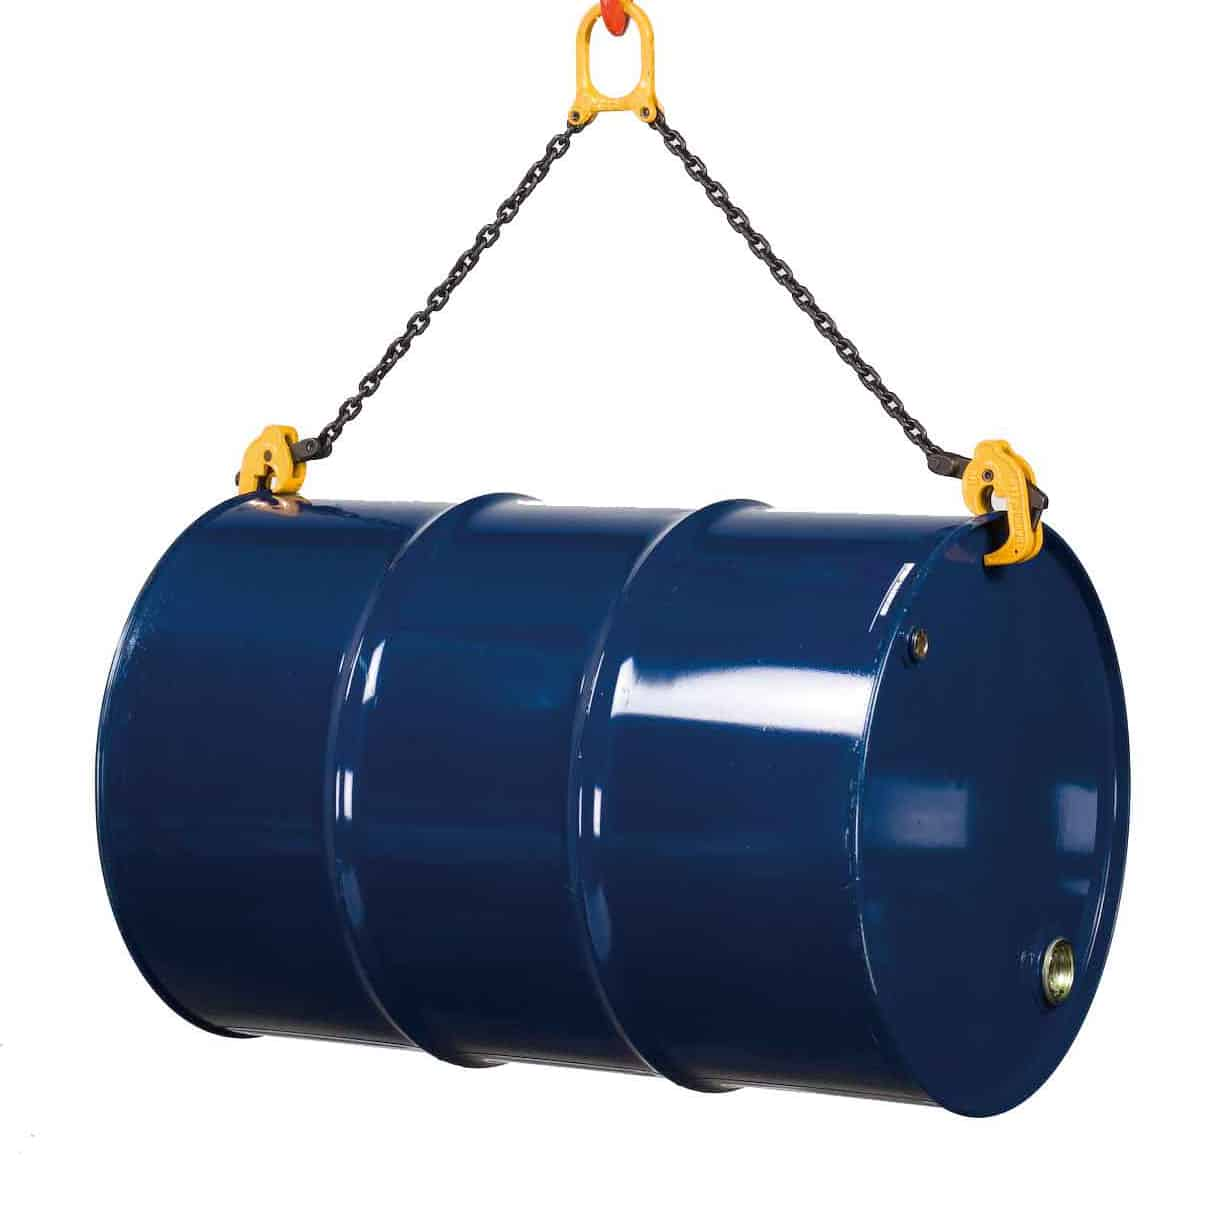 Horizontal Chain Grab Drum Lifter